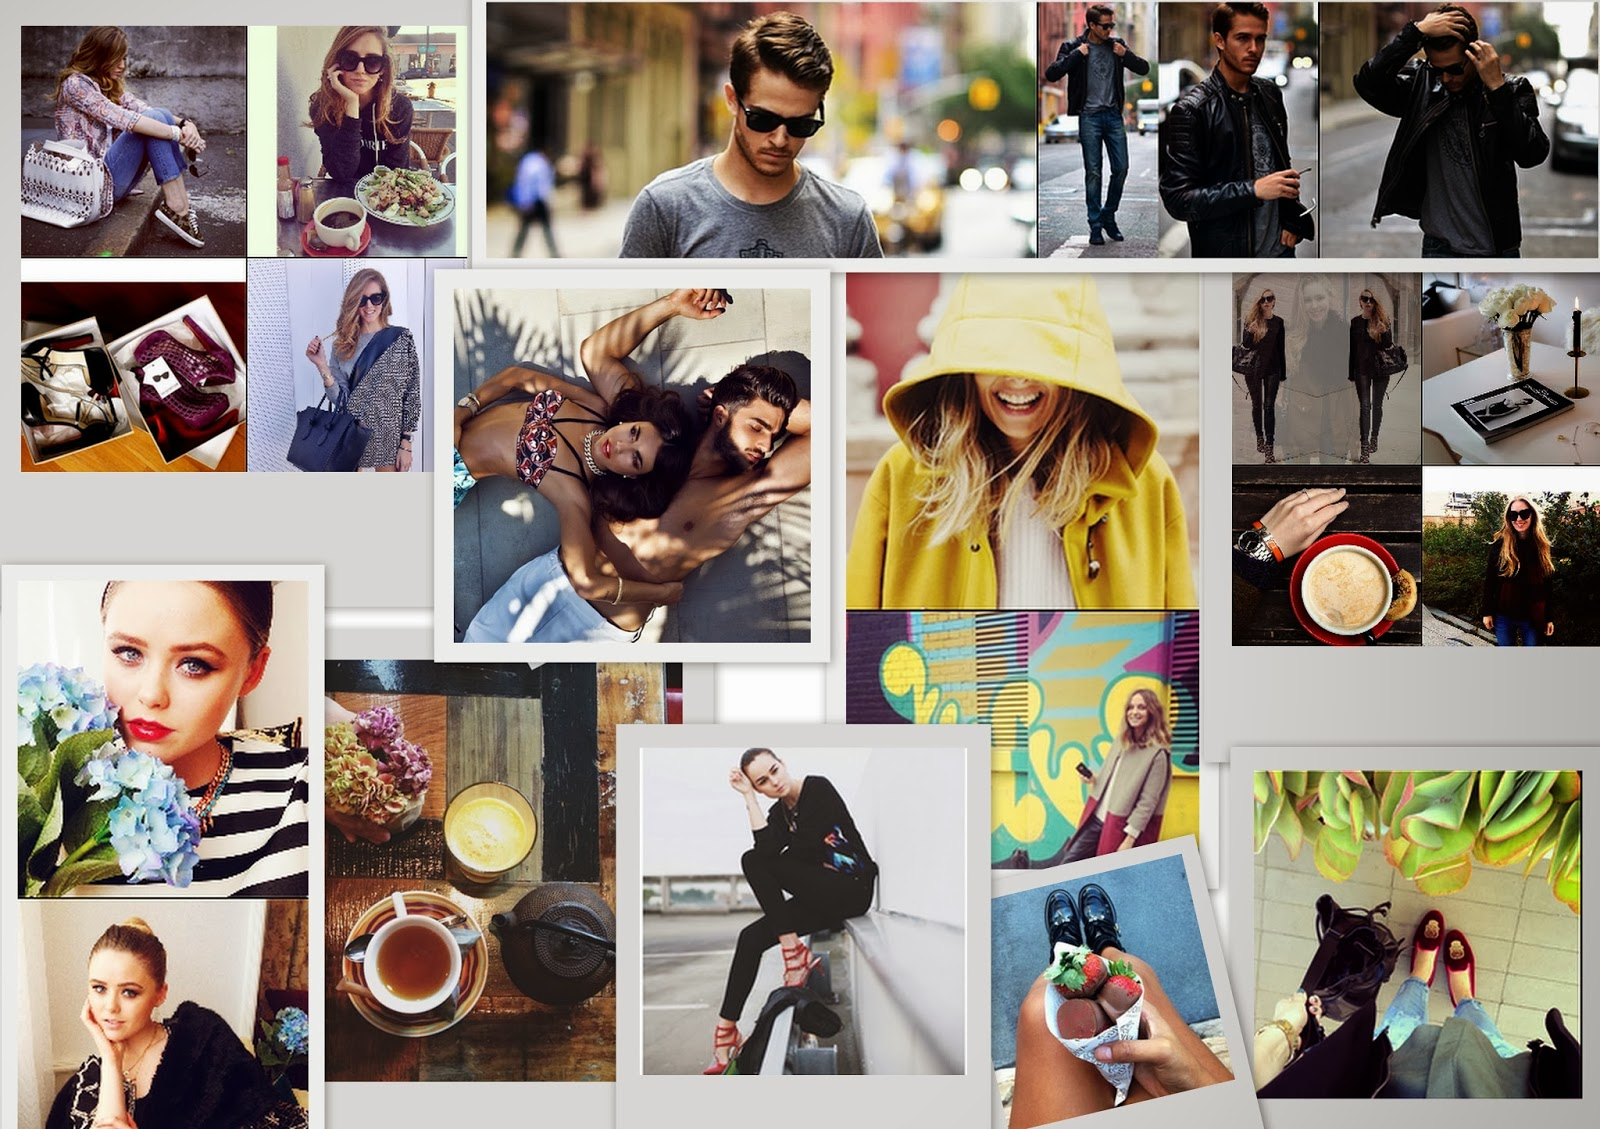 Top 10 fashion bloggers - Here Are My Top 10 Fashion Bloggers Instagram Accounts